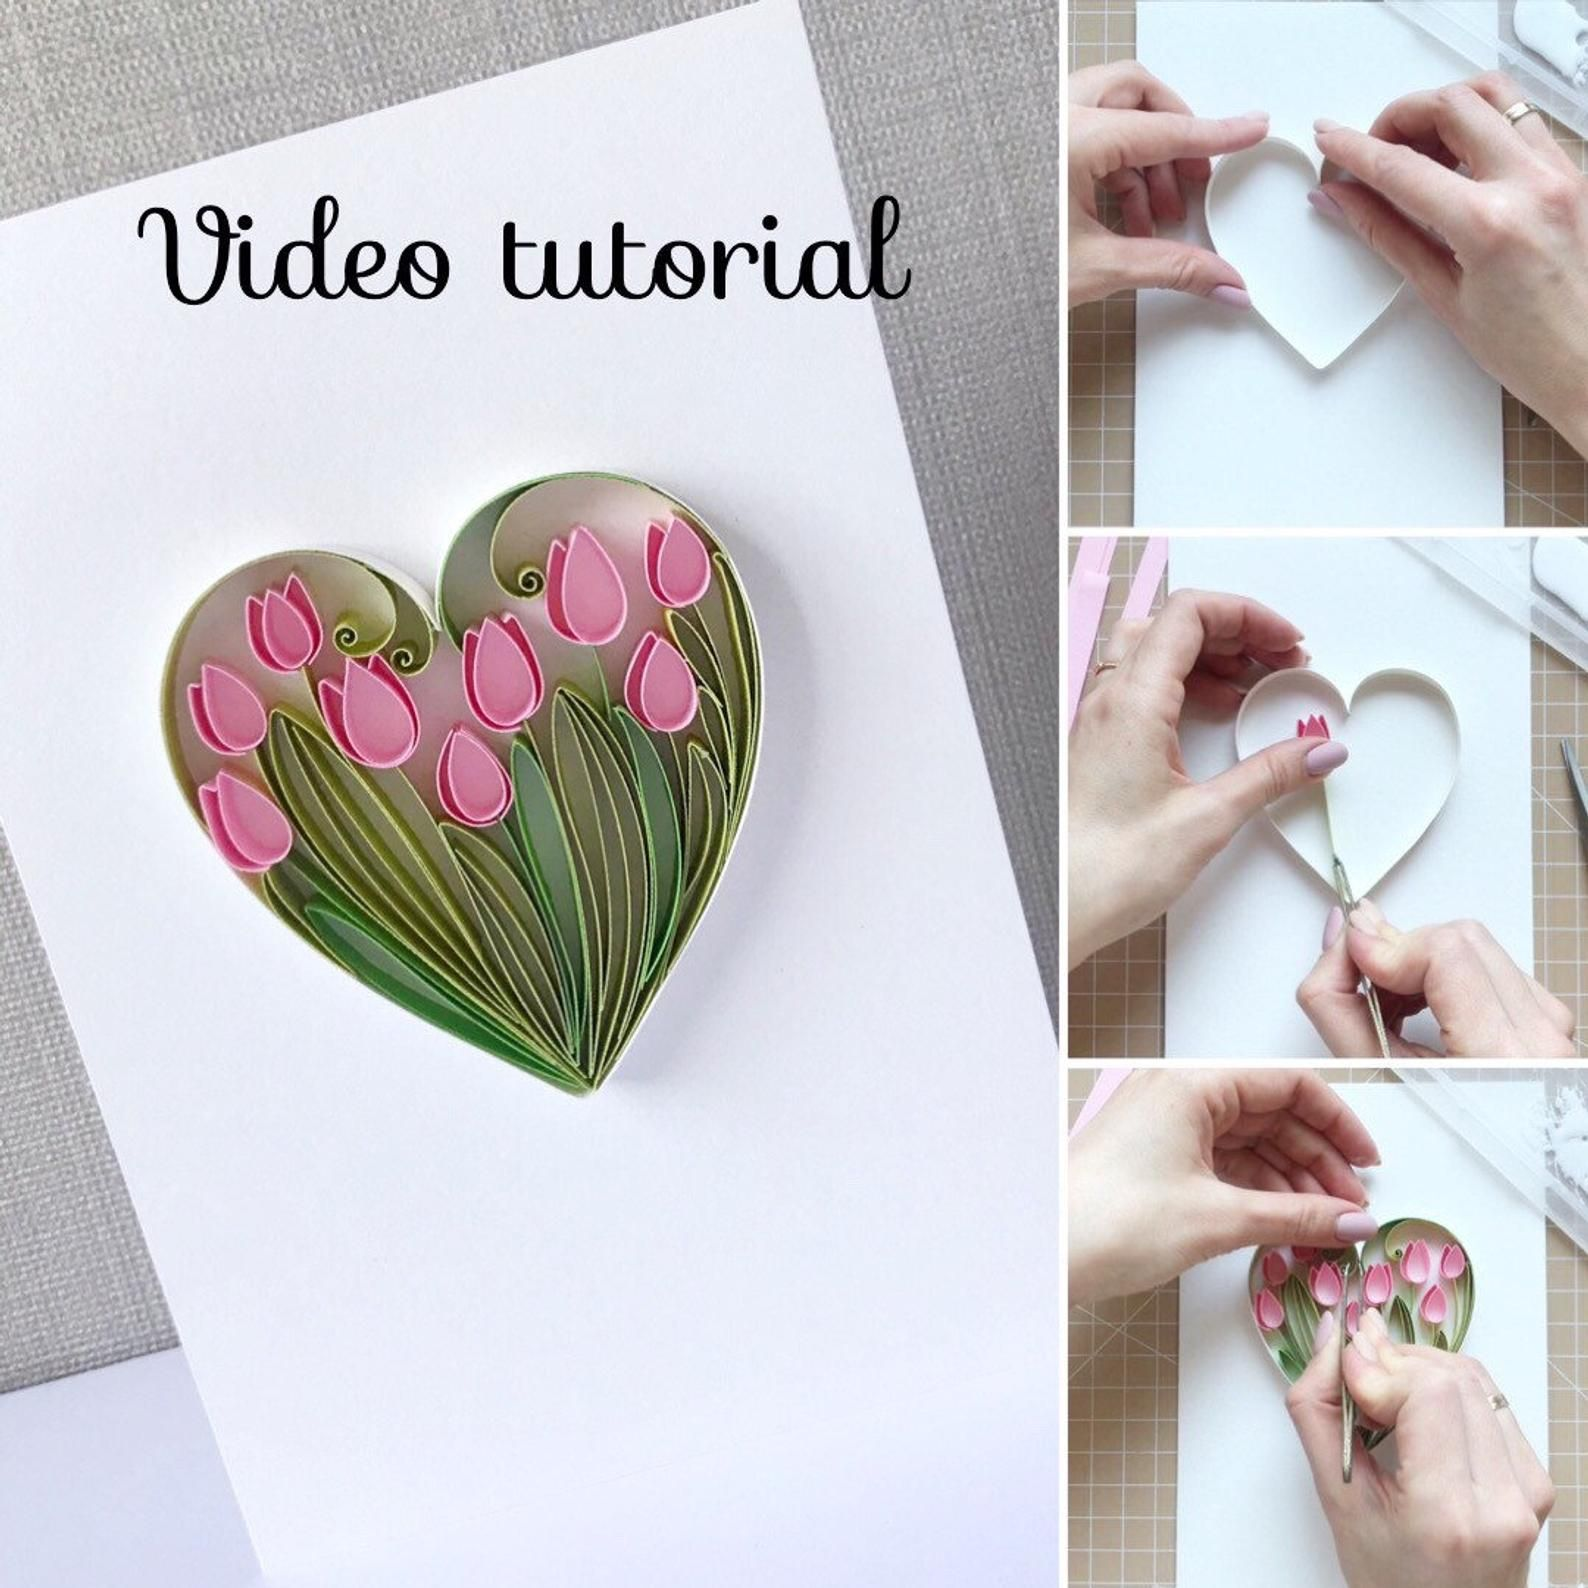 Quilling Video Tutorial How To Make Heart With Tulips Video